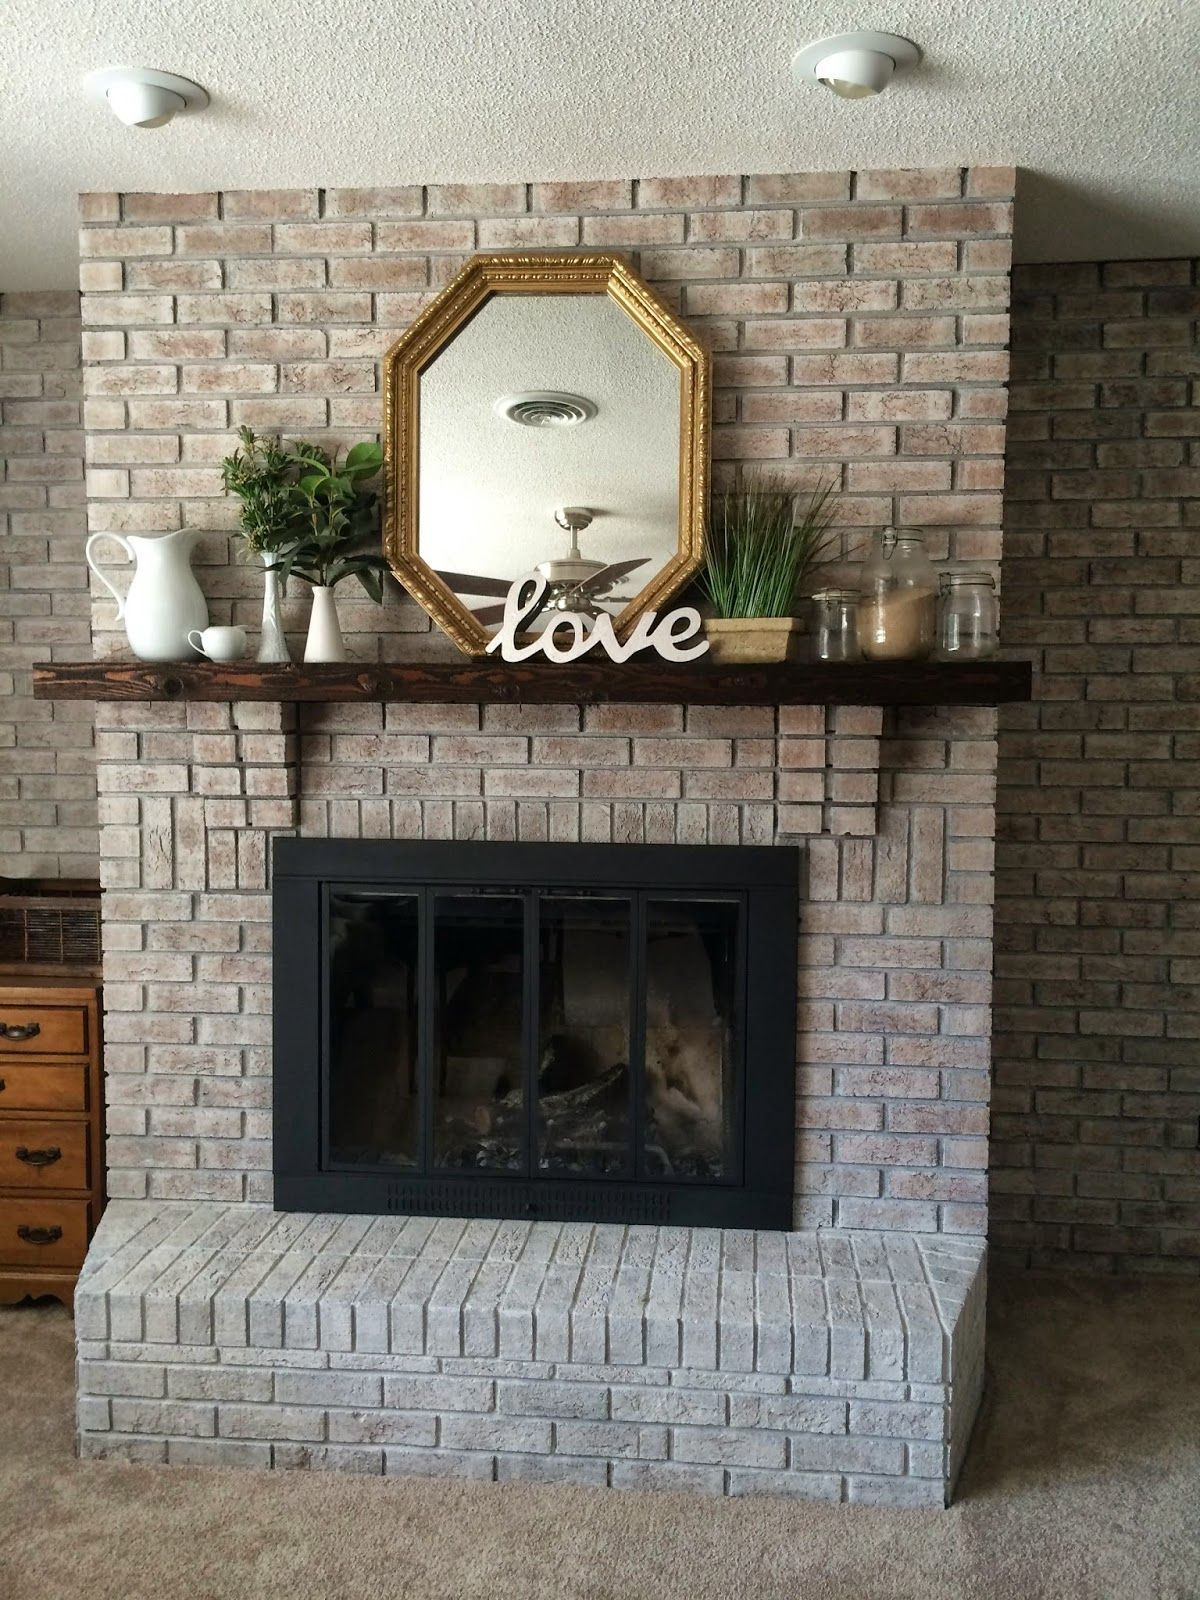 in surrounded fireplace screen pin wherever how usually home fires are a decoration front diy soot cheap produce decor smoke or to with they decorator clean bricks cleaning stone set wire ablaze by brick and